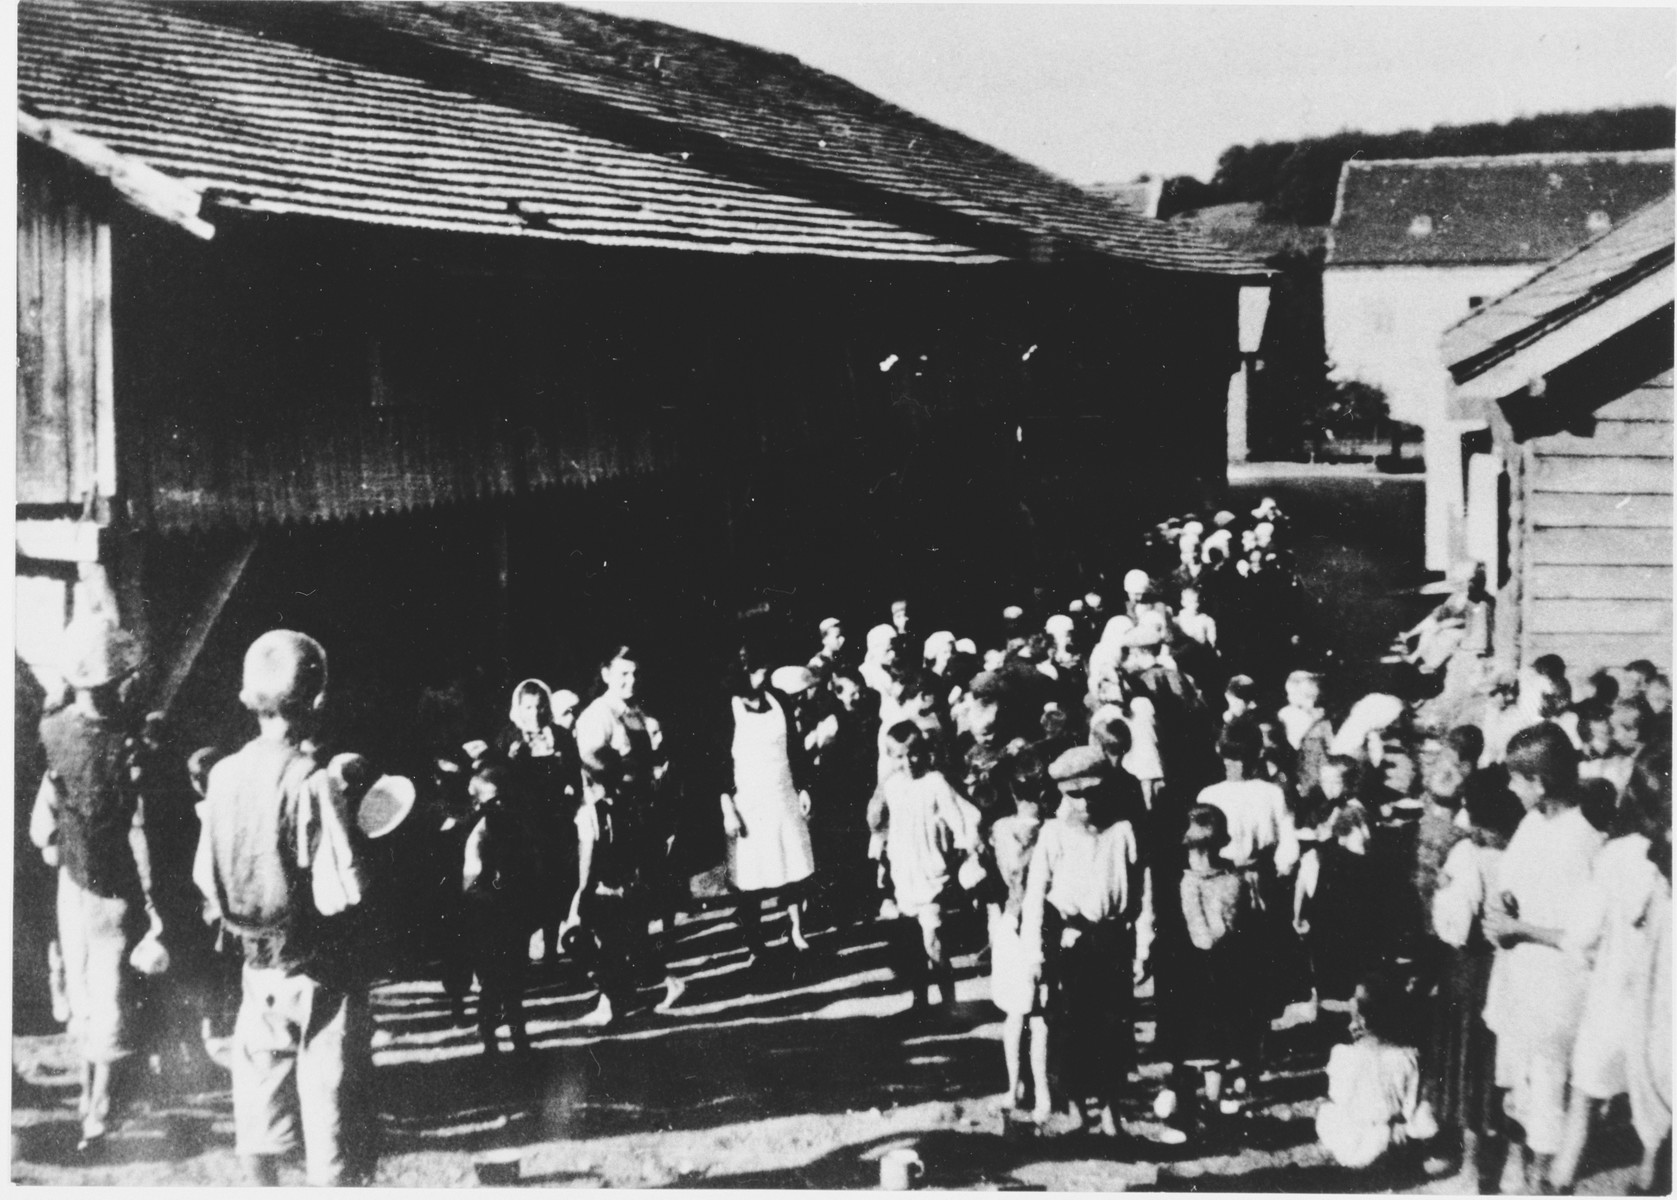 A large group of children are assembled outside in the Gornja Rijeka concentration camp.